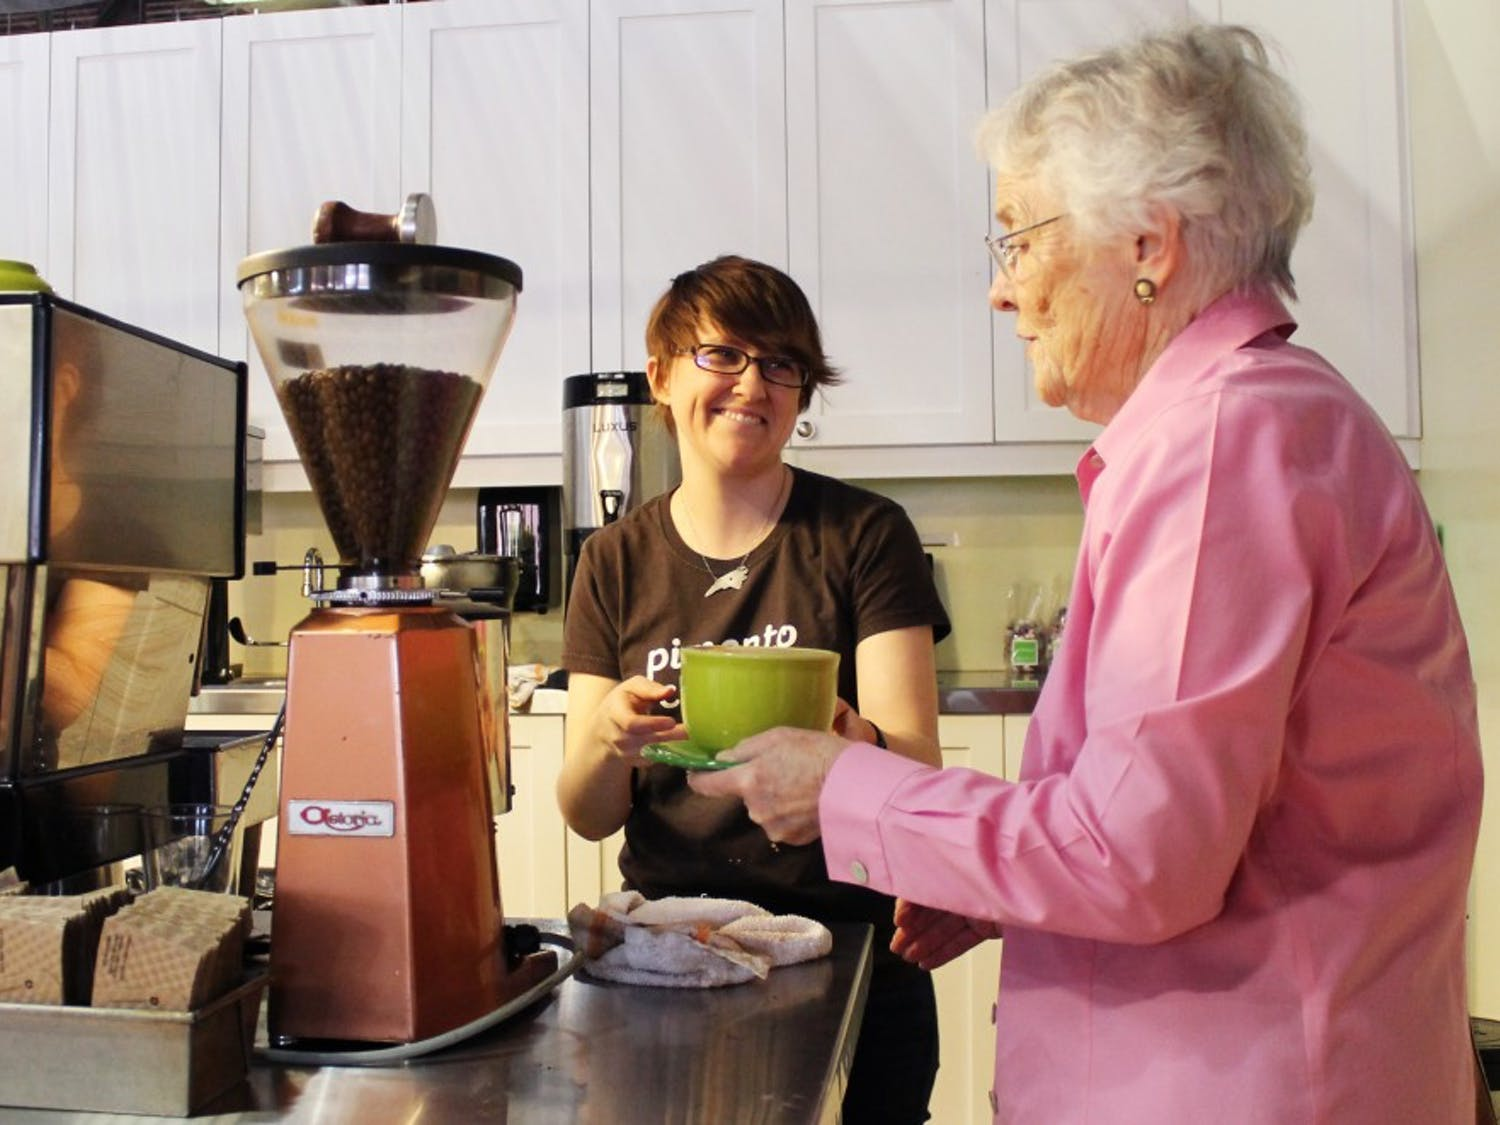 """At Parker and Otis, a local store in Durham, Emily Hester of Raleigh serves Margaret Keller of Durham. Keller visits Parker and Otis as often as she can because, """"This is one of the two best places in Durham with the best cappuccinos, and I prefer local places."""""""